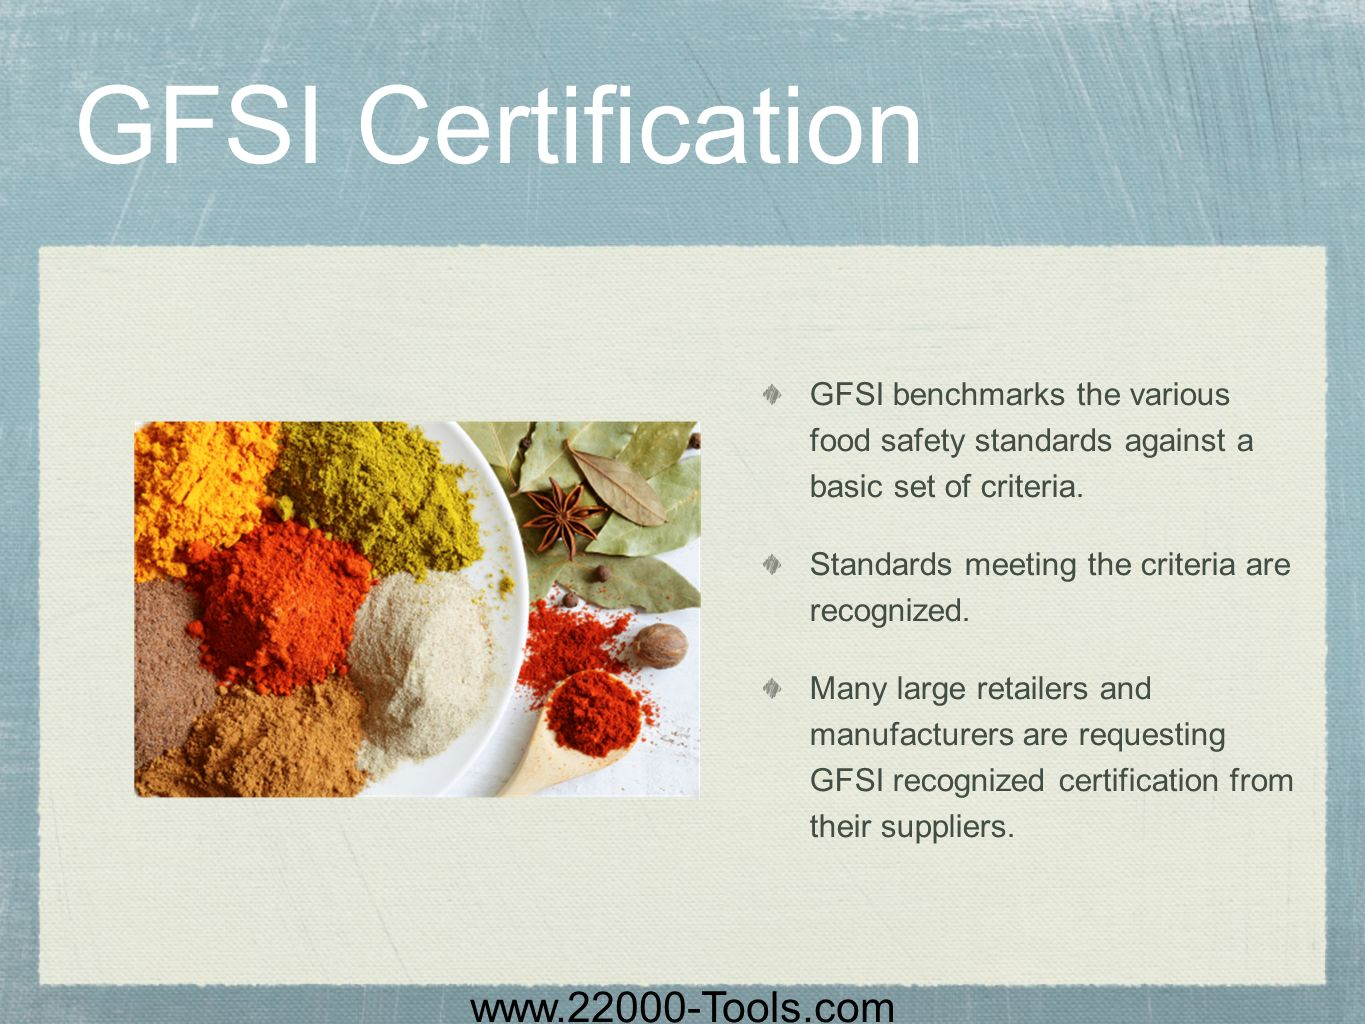 GFSI CertificationGFSI benchmarks the various food safety standards against a basic set of criteria.